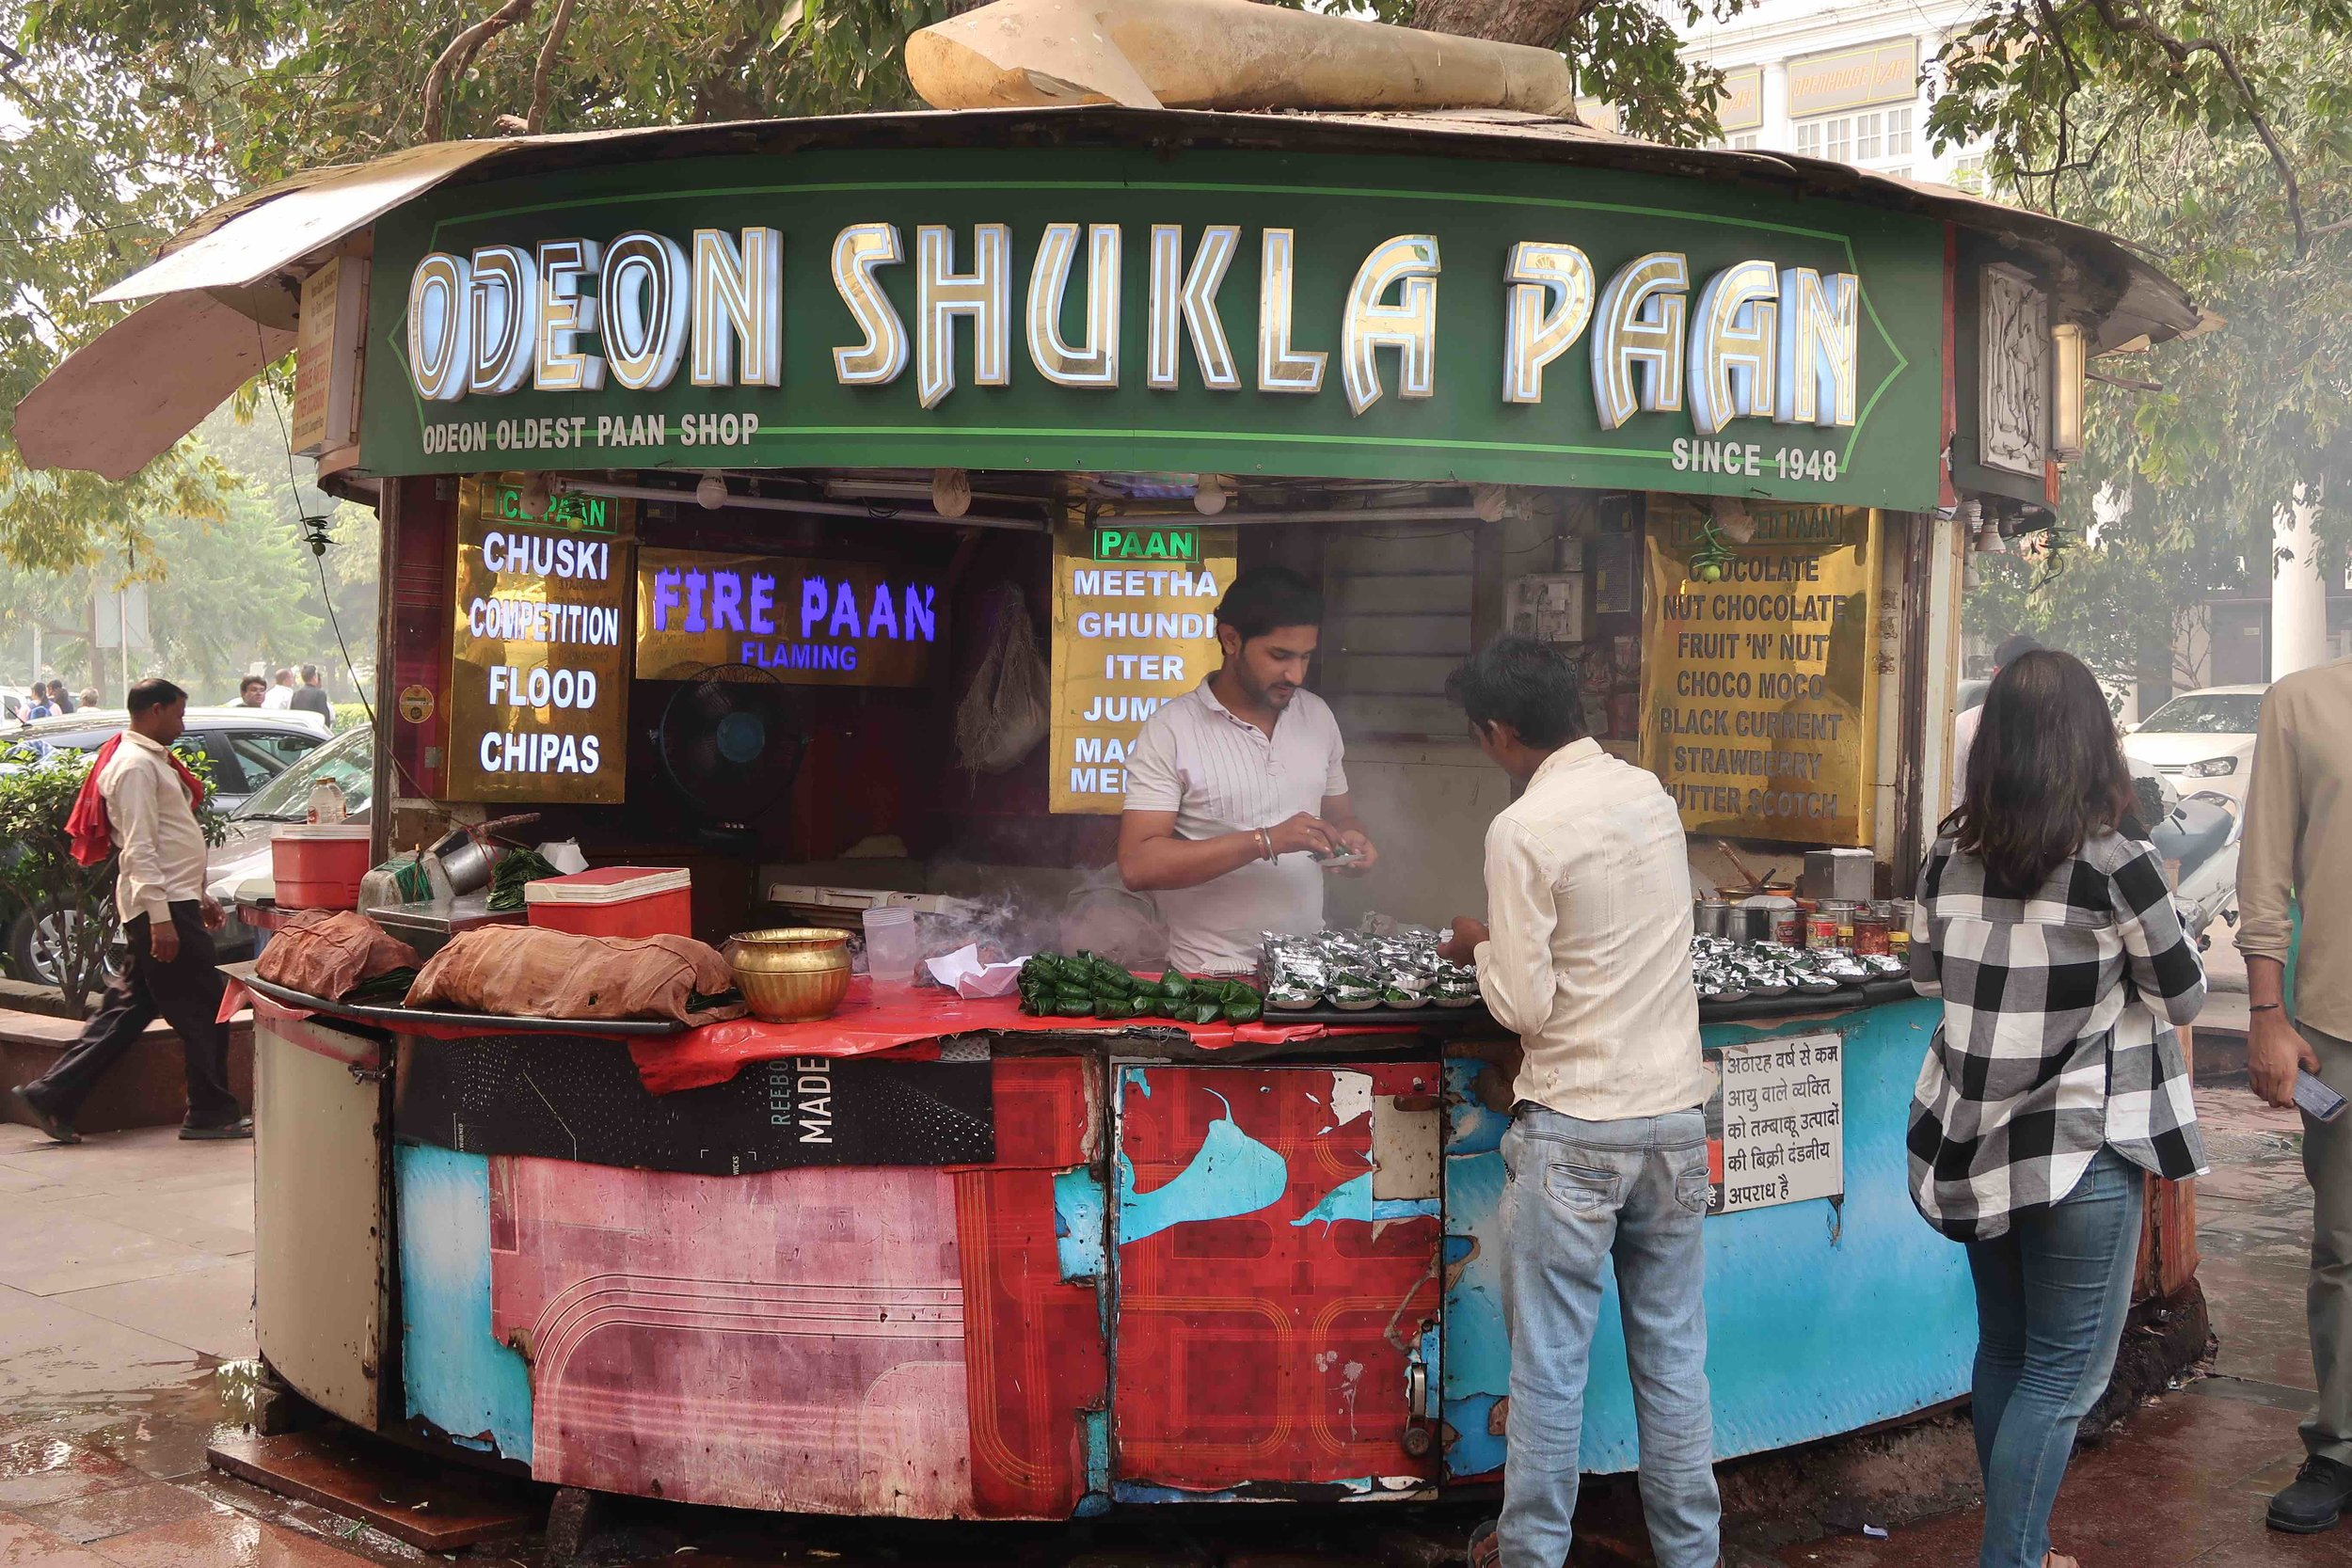 Odeon Shukla Paan - Have a fire paan in Delhi! Or try one of these other unusual things to do in Delhi..